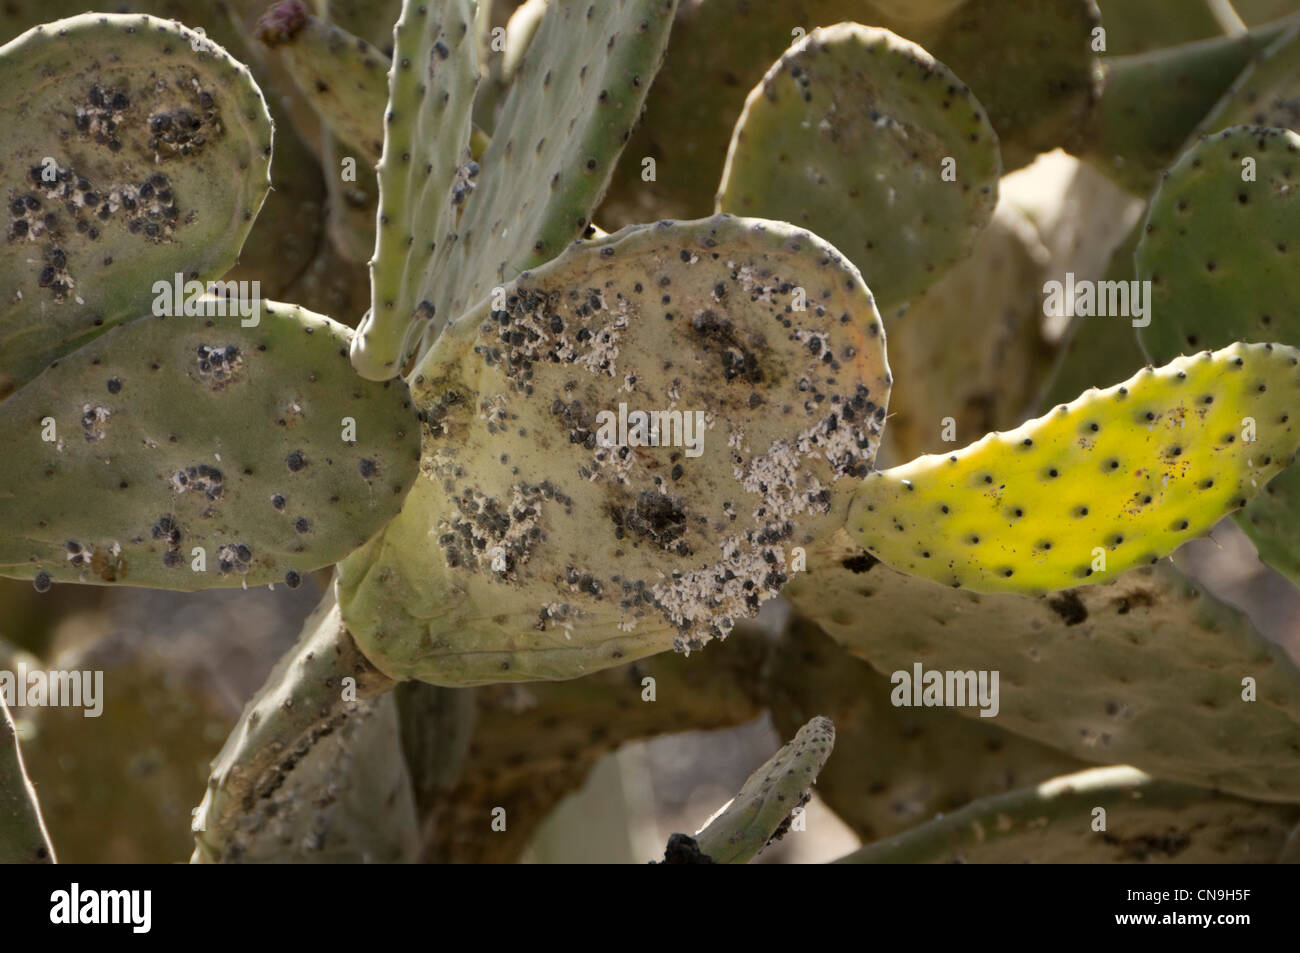 Lanzarote, Canary Islands - Cochineal Scale Insects on pricky pear (cultivated to harvest the insects). - Stock Image